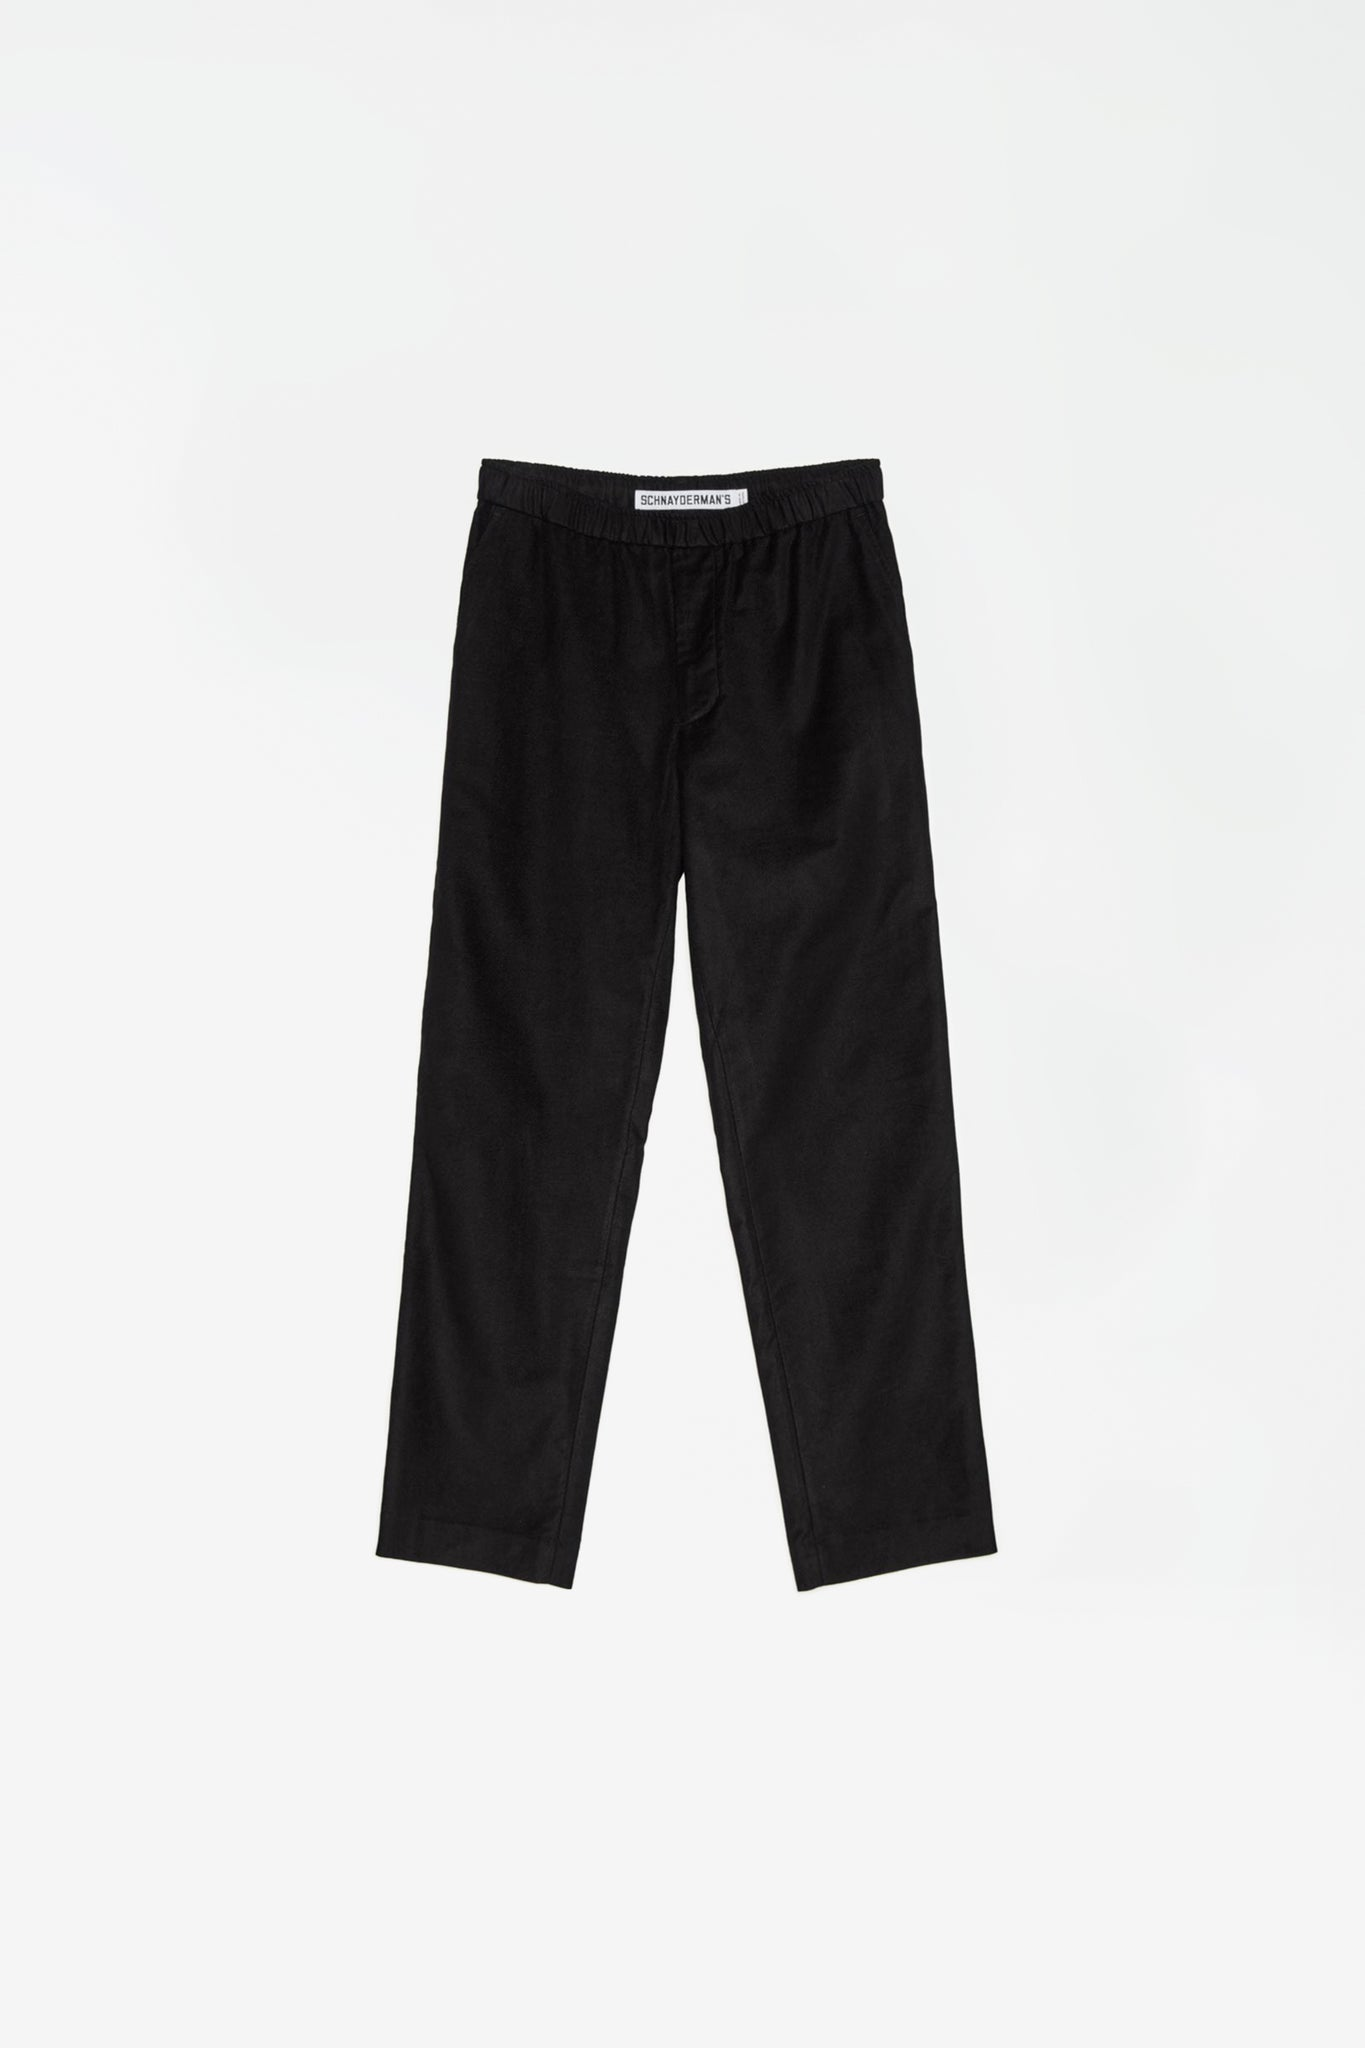 Pop pants moleskin twill black